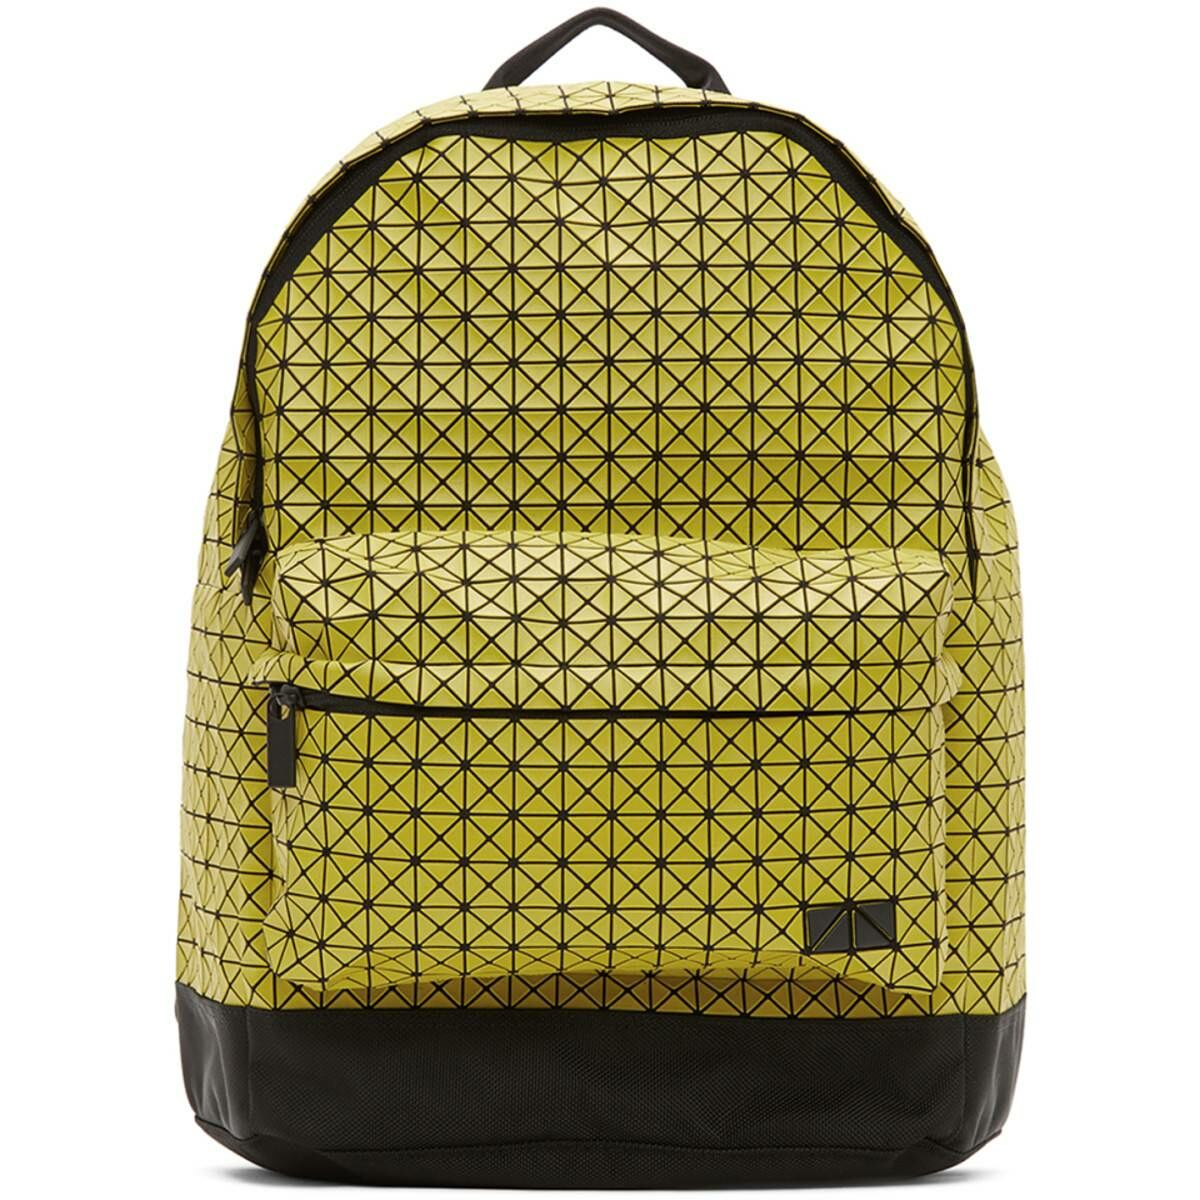 Bao Bao Issey Miyake Green Daypack Backpack Ssense USA MEN Men ACCESSORIES Mens BAGS